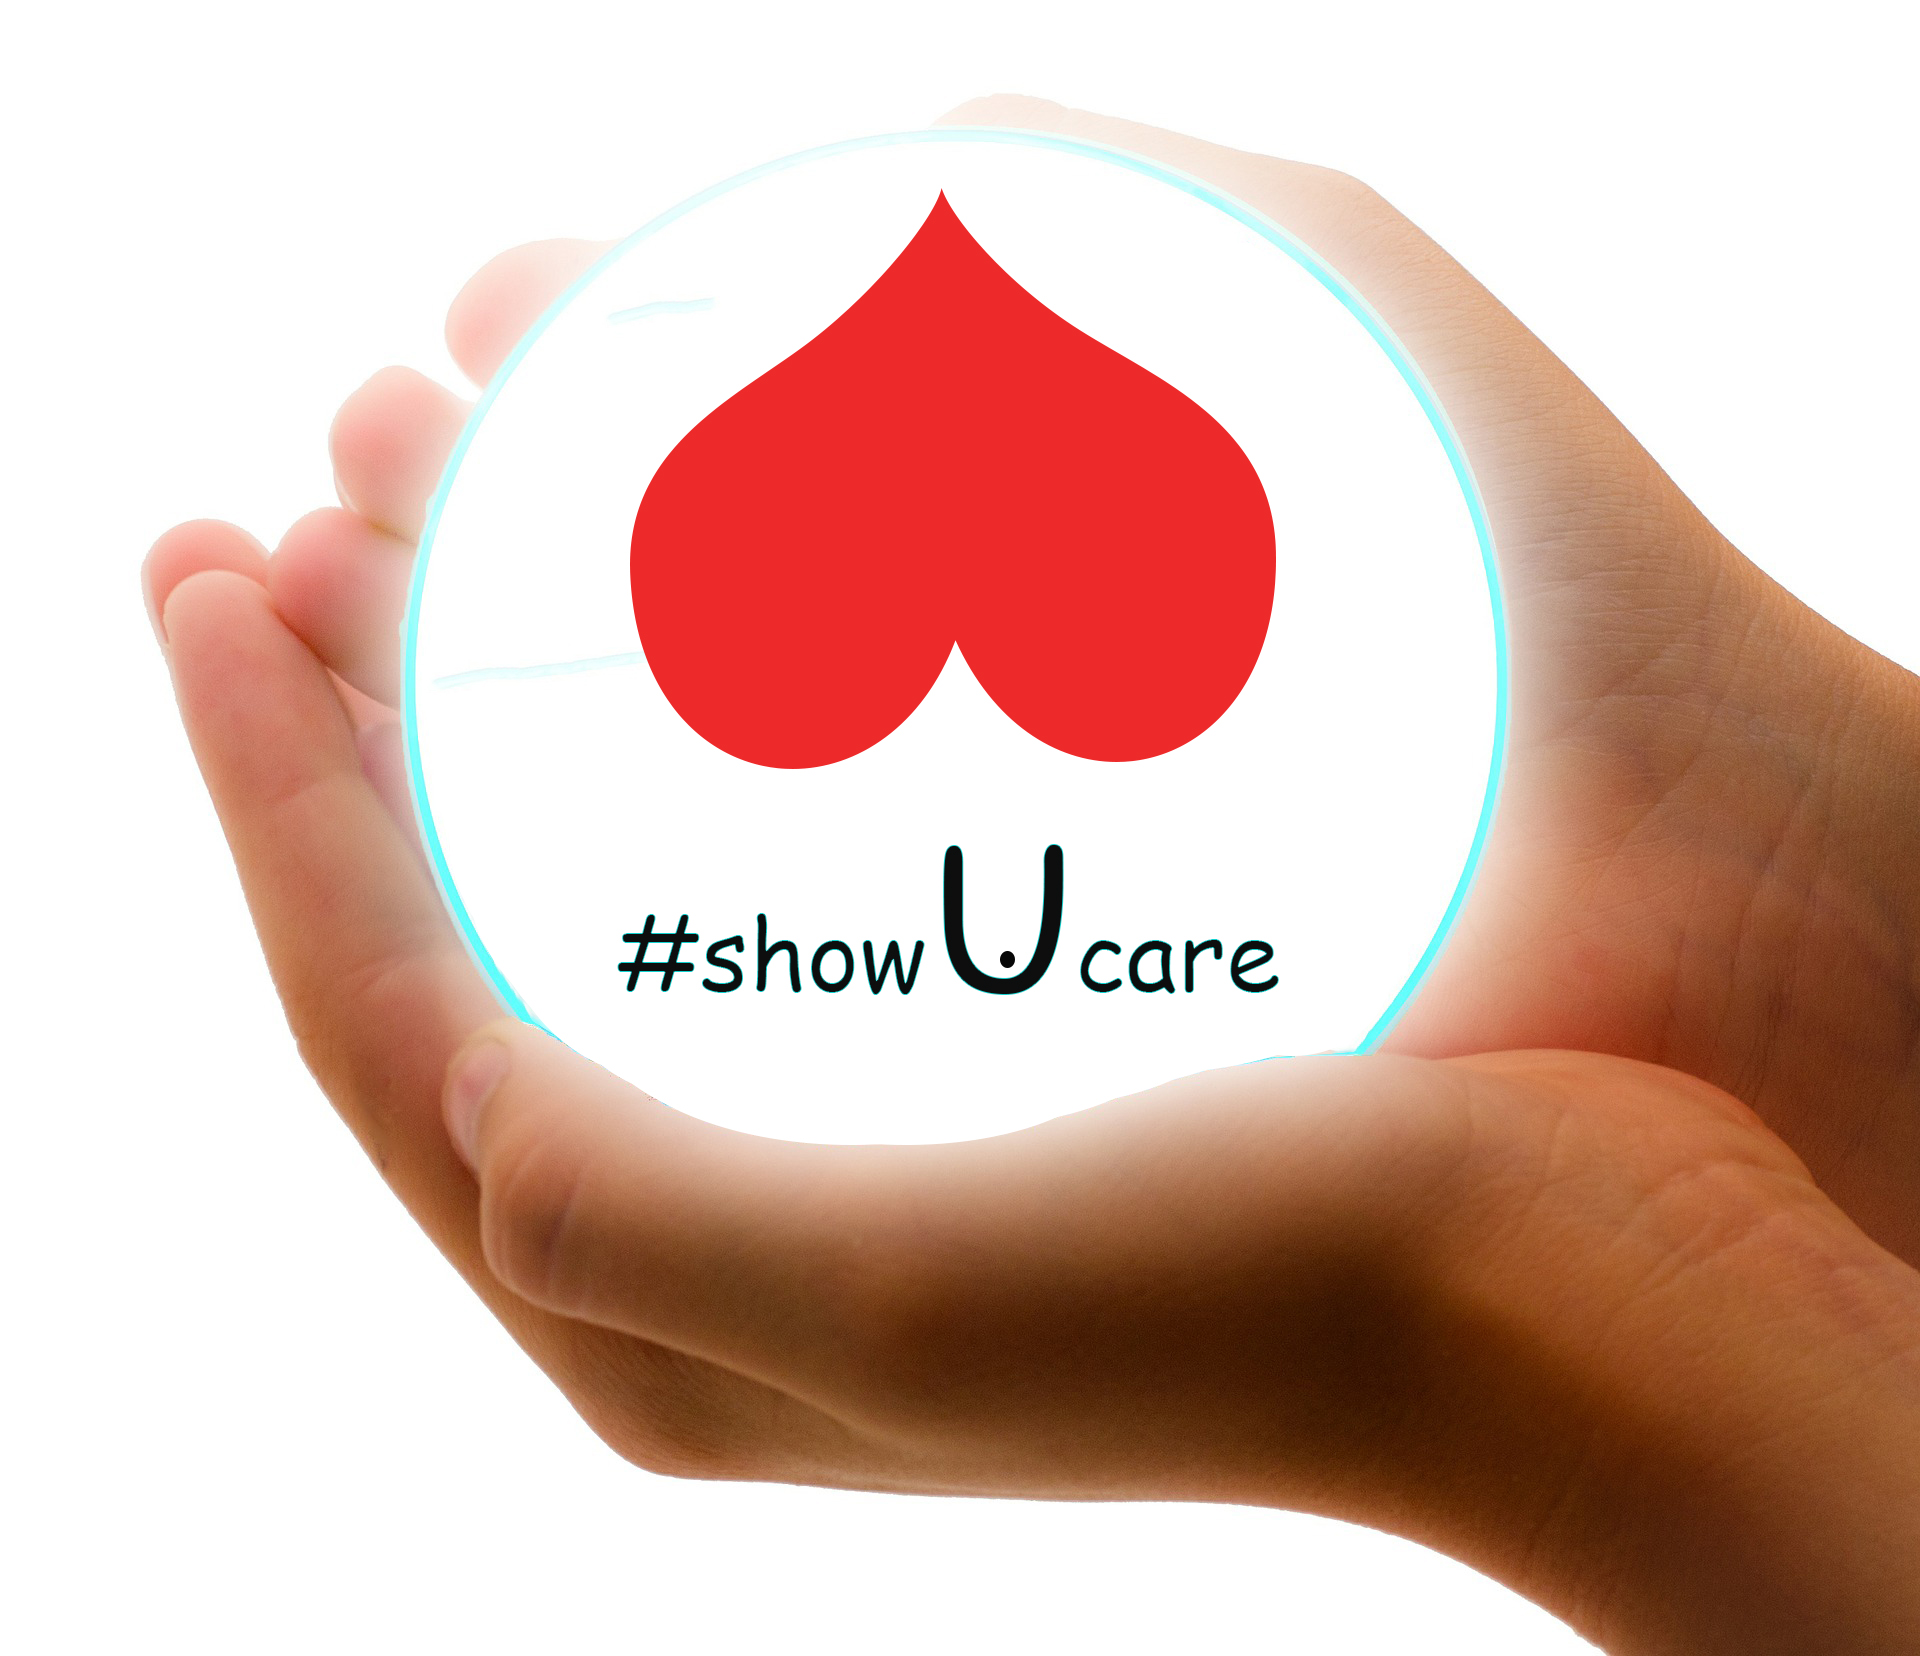 #showucare - image hands demonstrating care